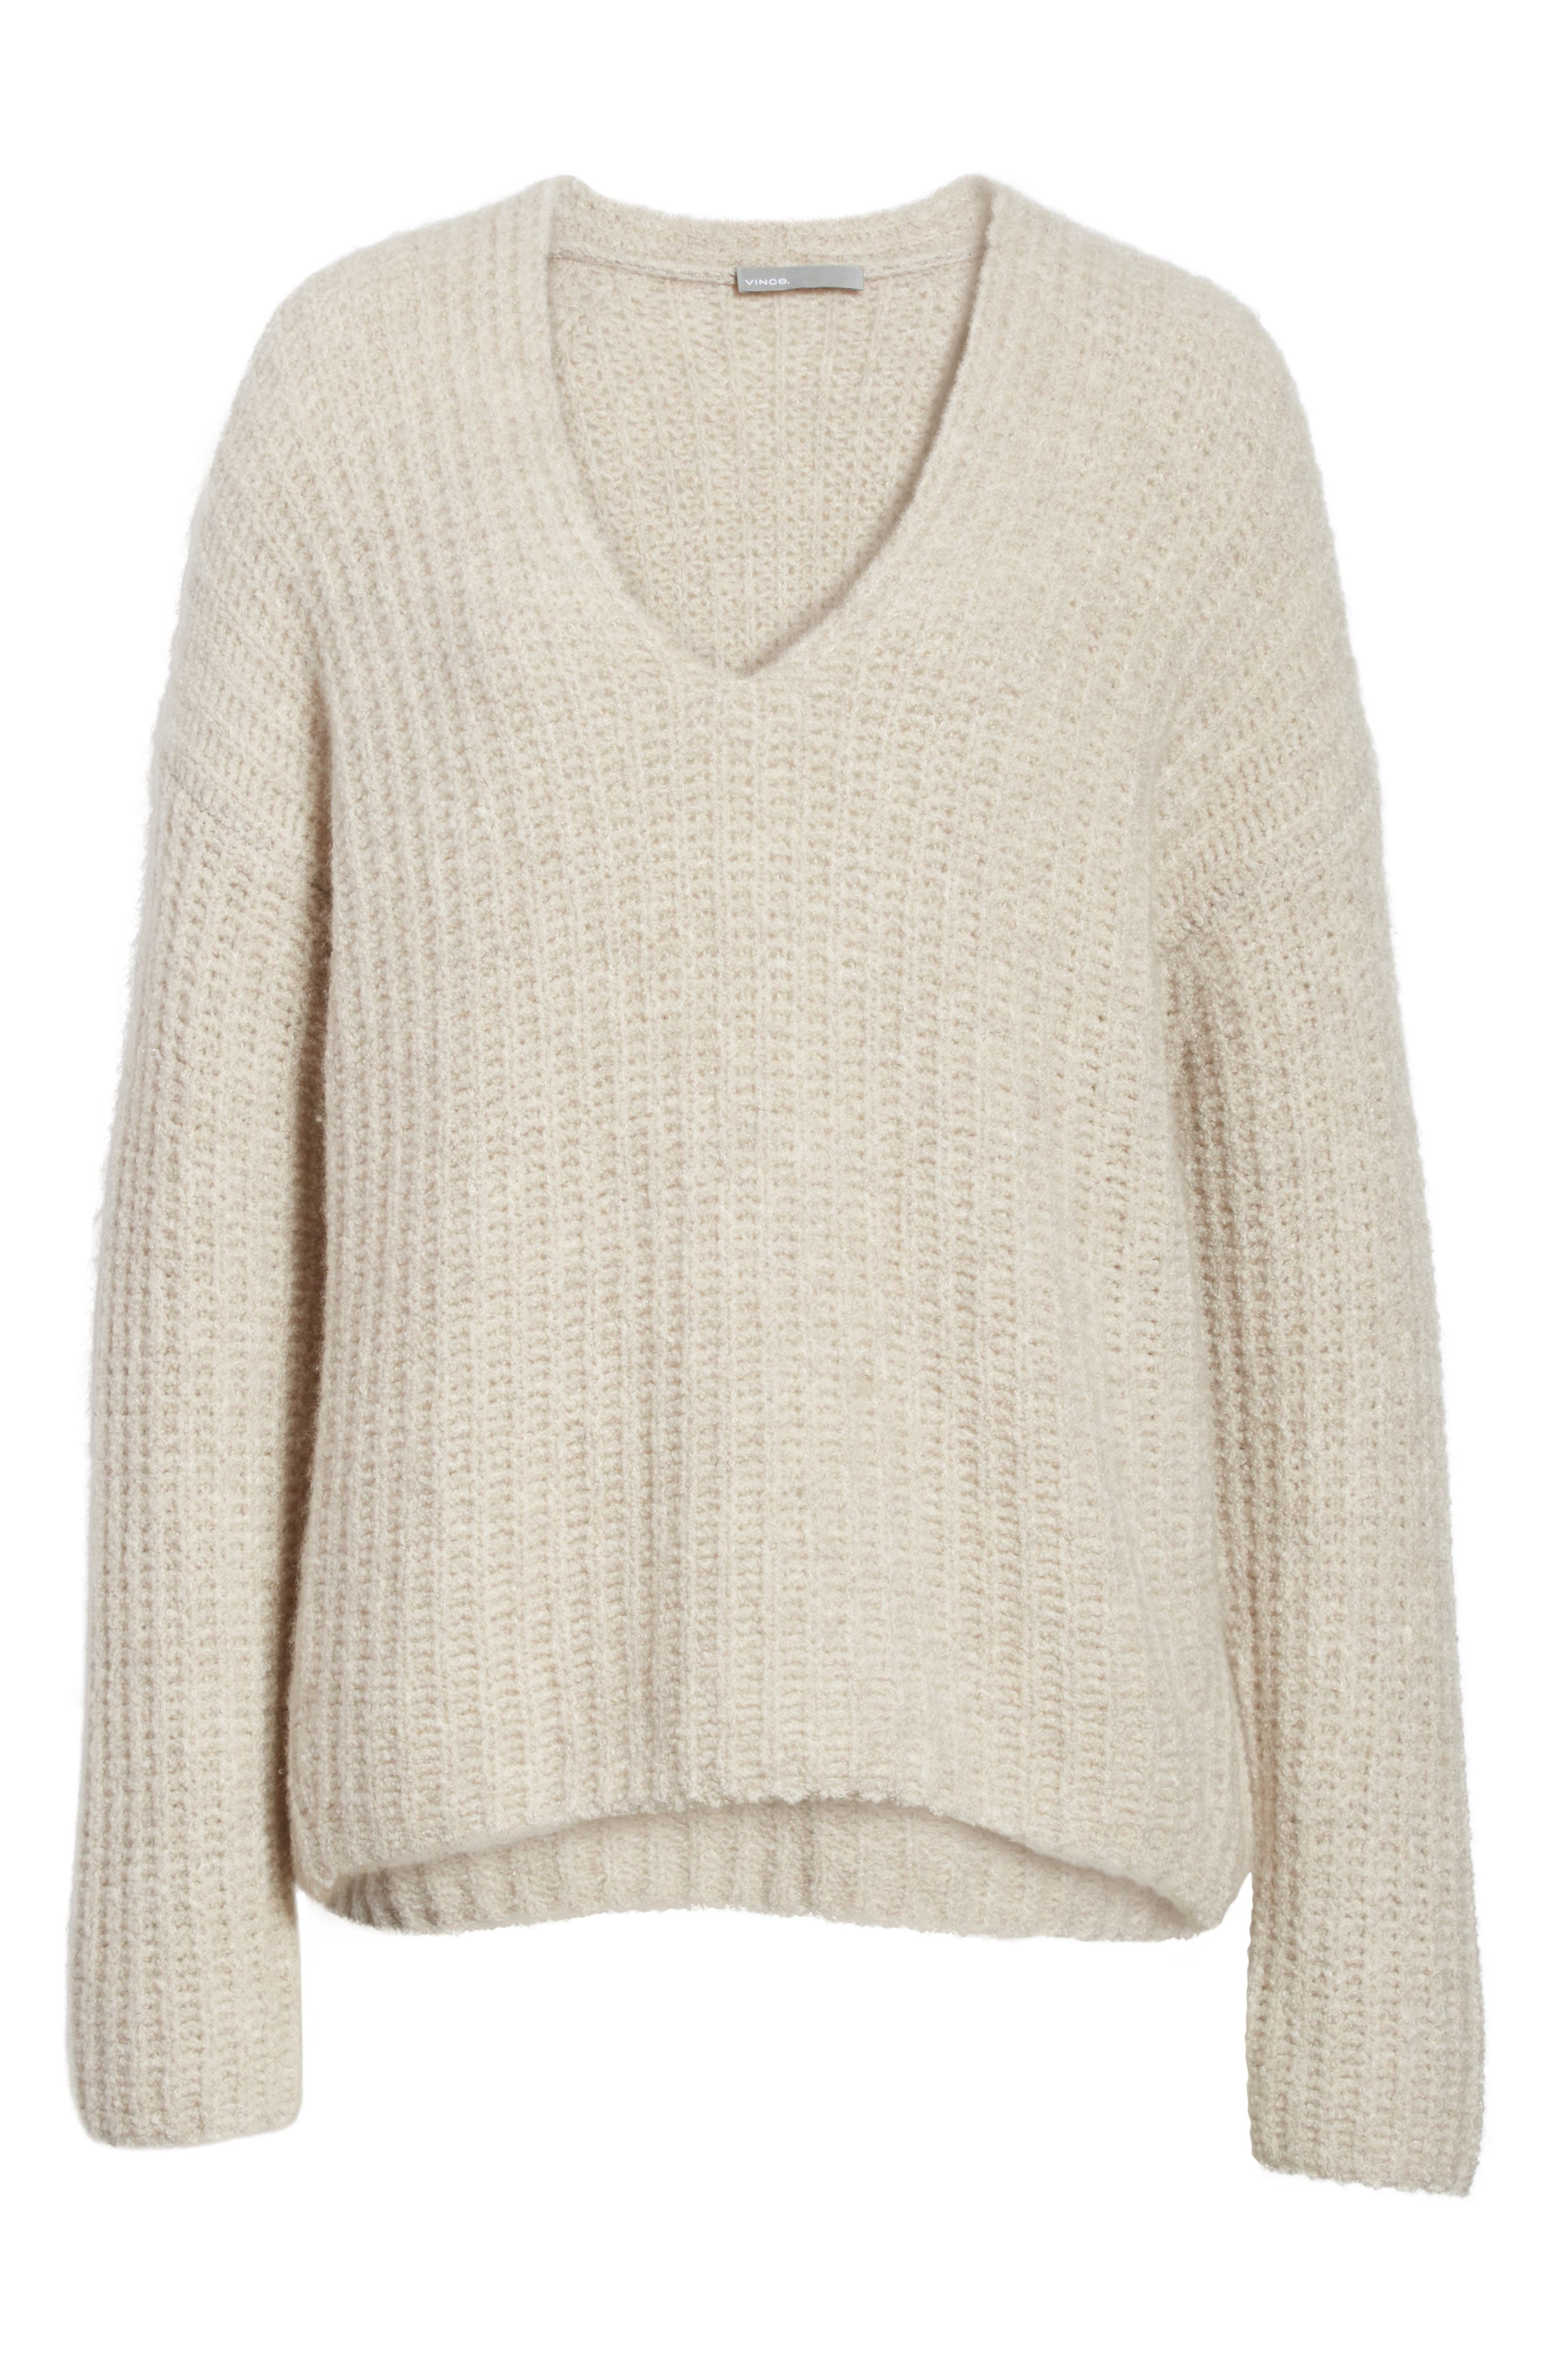 Deep V-Neck Cashmere Blend Sweater,                             Alternate thumbnail 6, color,                             255